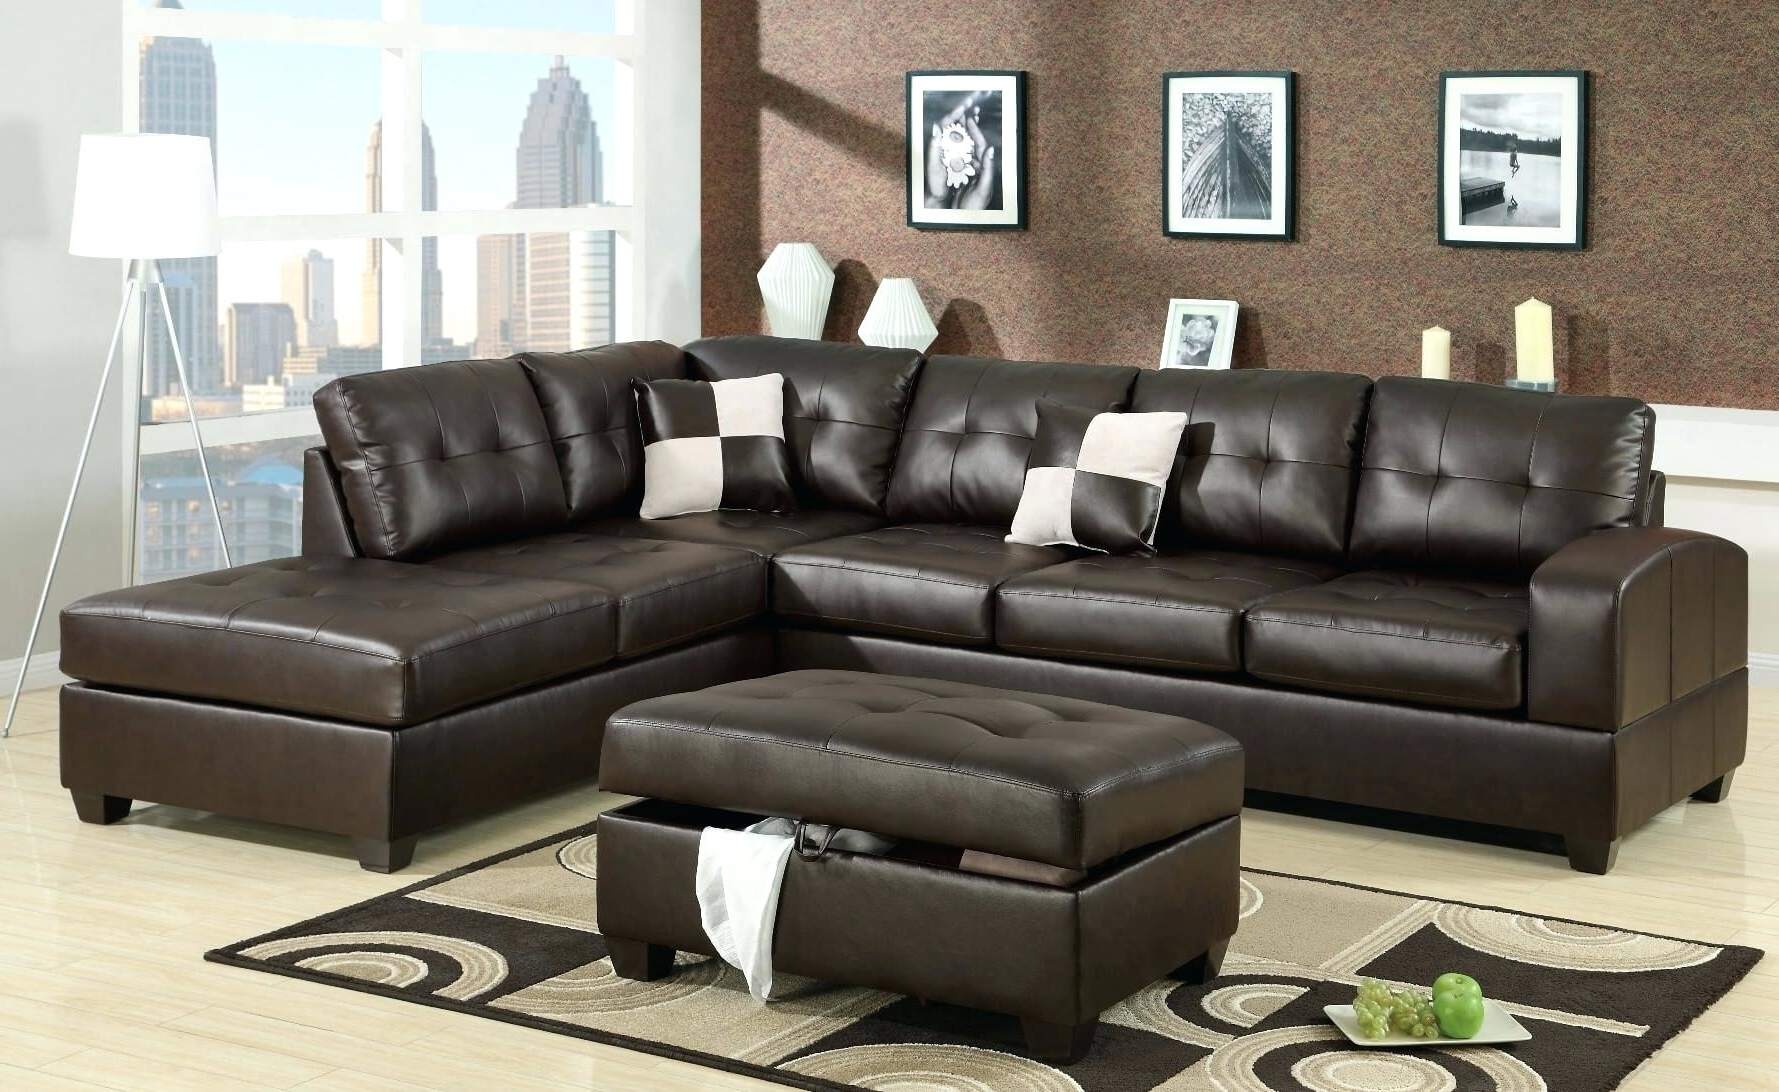 Memphis Tn Sectional Sofas With Best And Newest Leather Sectional Sofas – Stepdesigns (View 13 of 20)